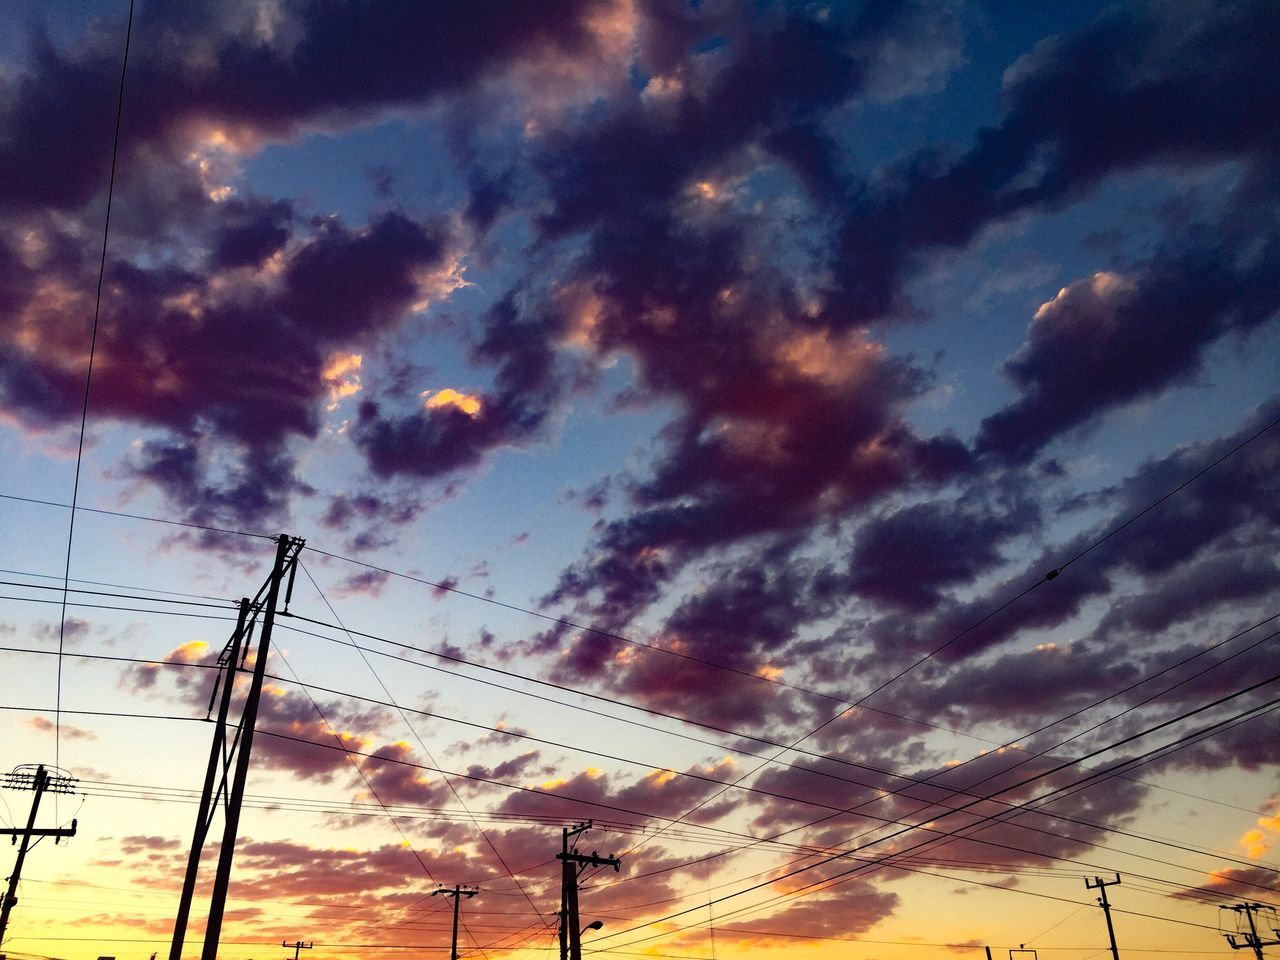 sunset, cloud - sky, cable, sky, power line, low angle view, electricity pylon, connection, silhouette, no people, power supply, electricity, nature, technology, communication, outdoors, scenics, beauty in nature, telephone line, day